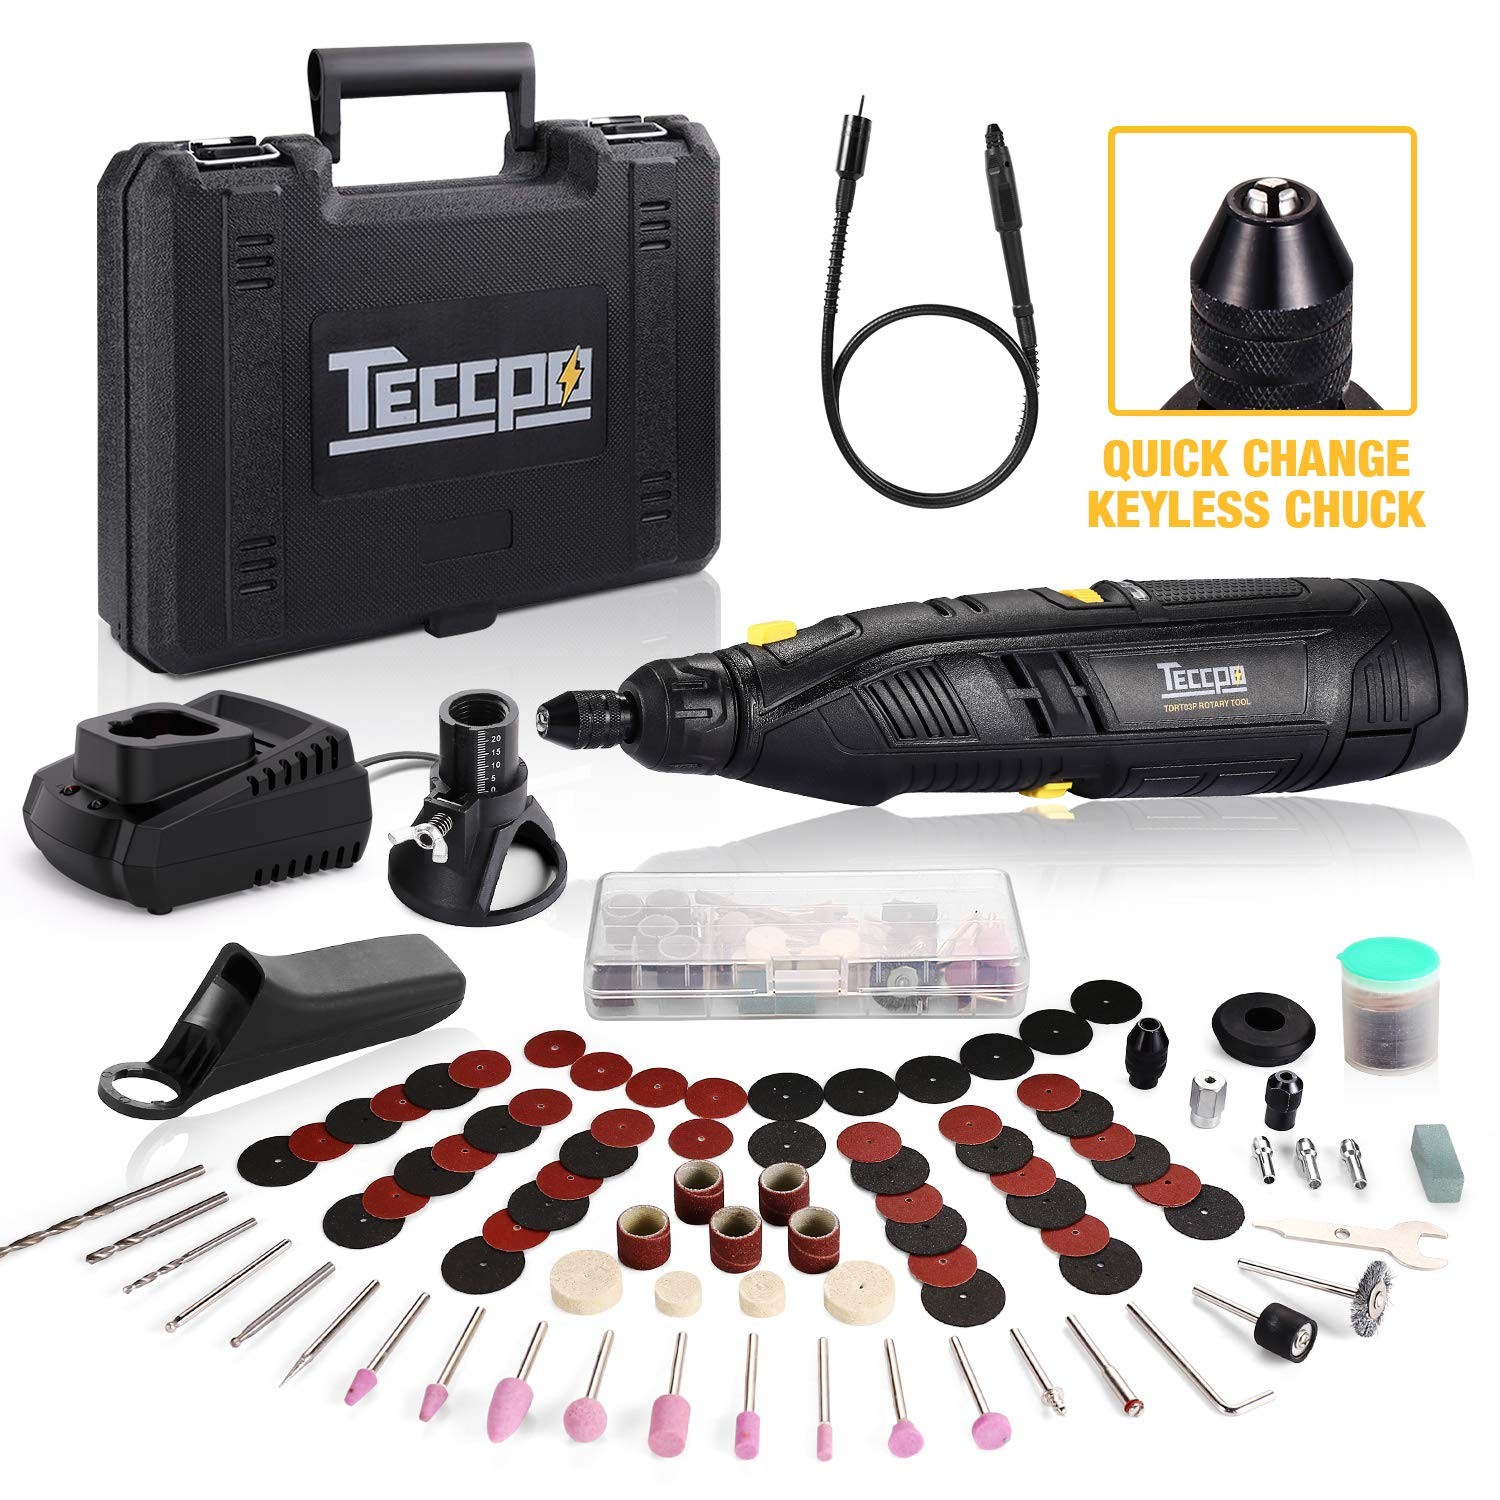 TECCPO 12V Powerful ordless Rotary Tool Kit